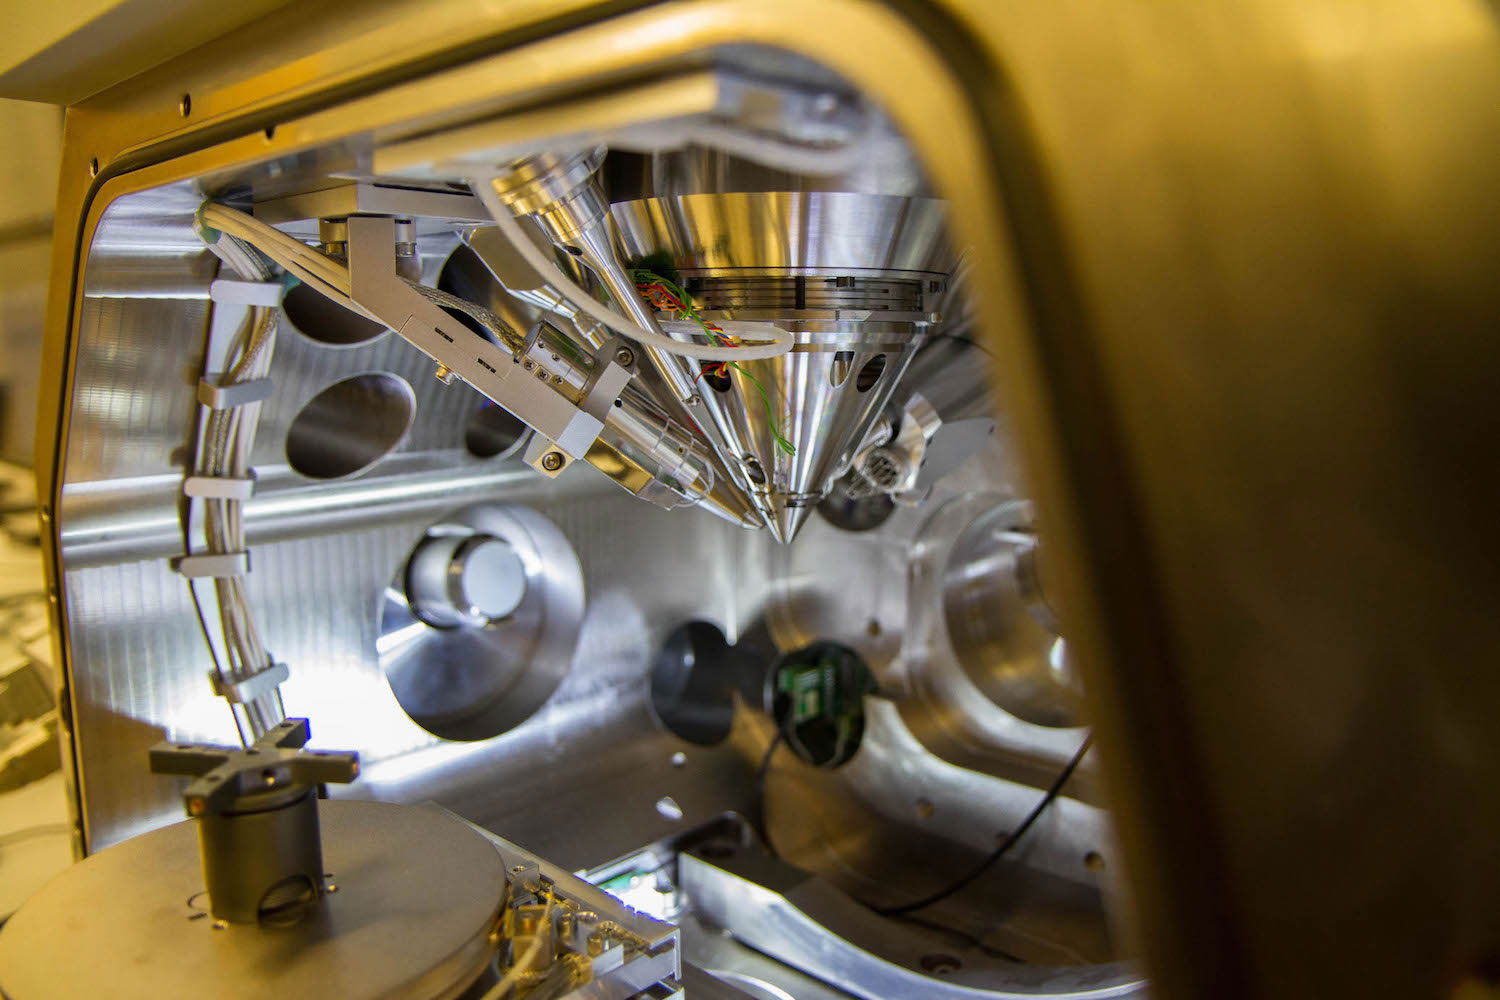 Close-up of a focused ion beam